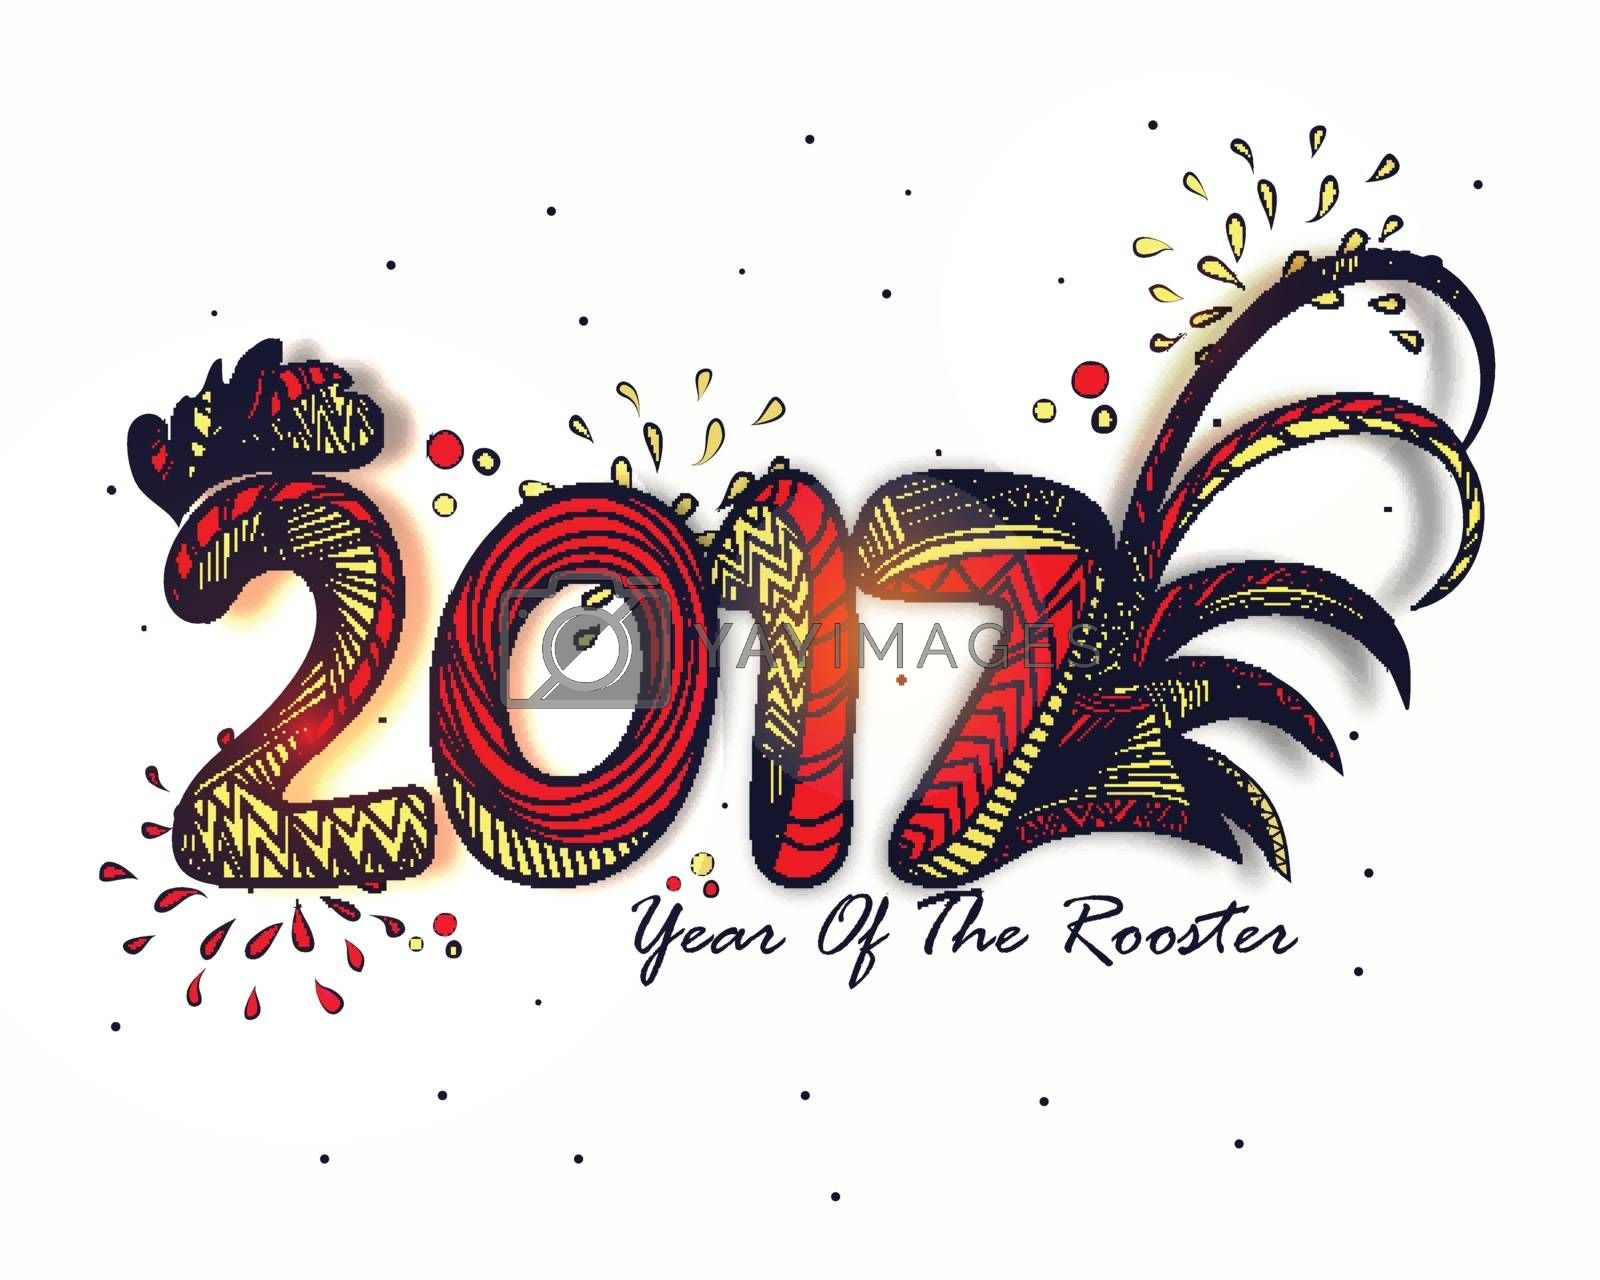 Creative Text 2017 on white background for Year of the Rooster celebration.